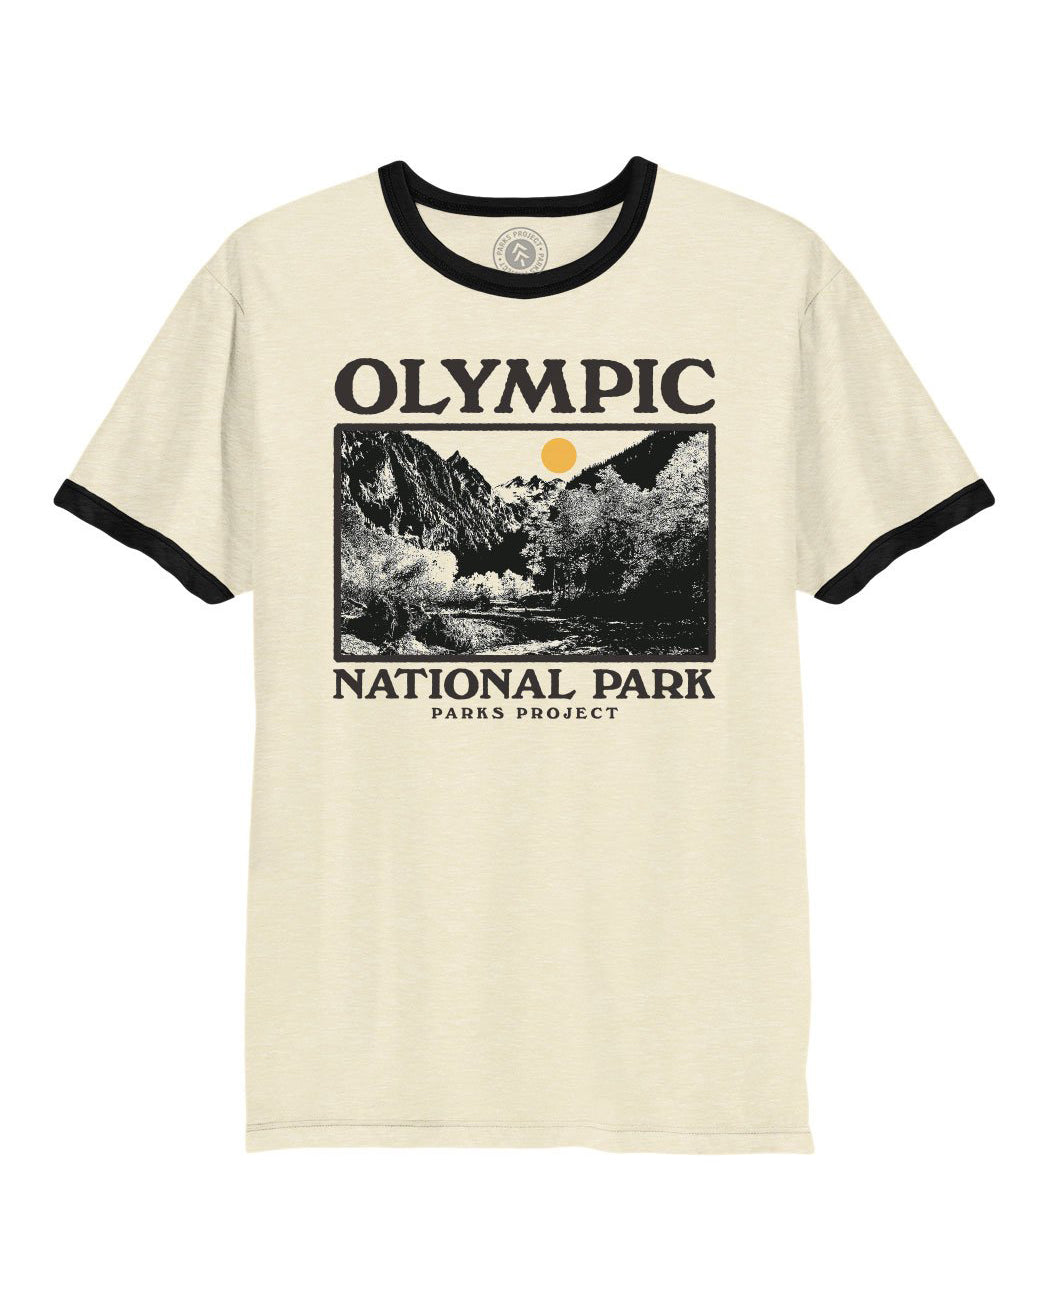 2ba28f3b Shop All National Park T-Shirts, Sweatshirts, Hats, & Accessories ...